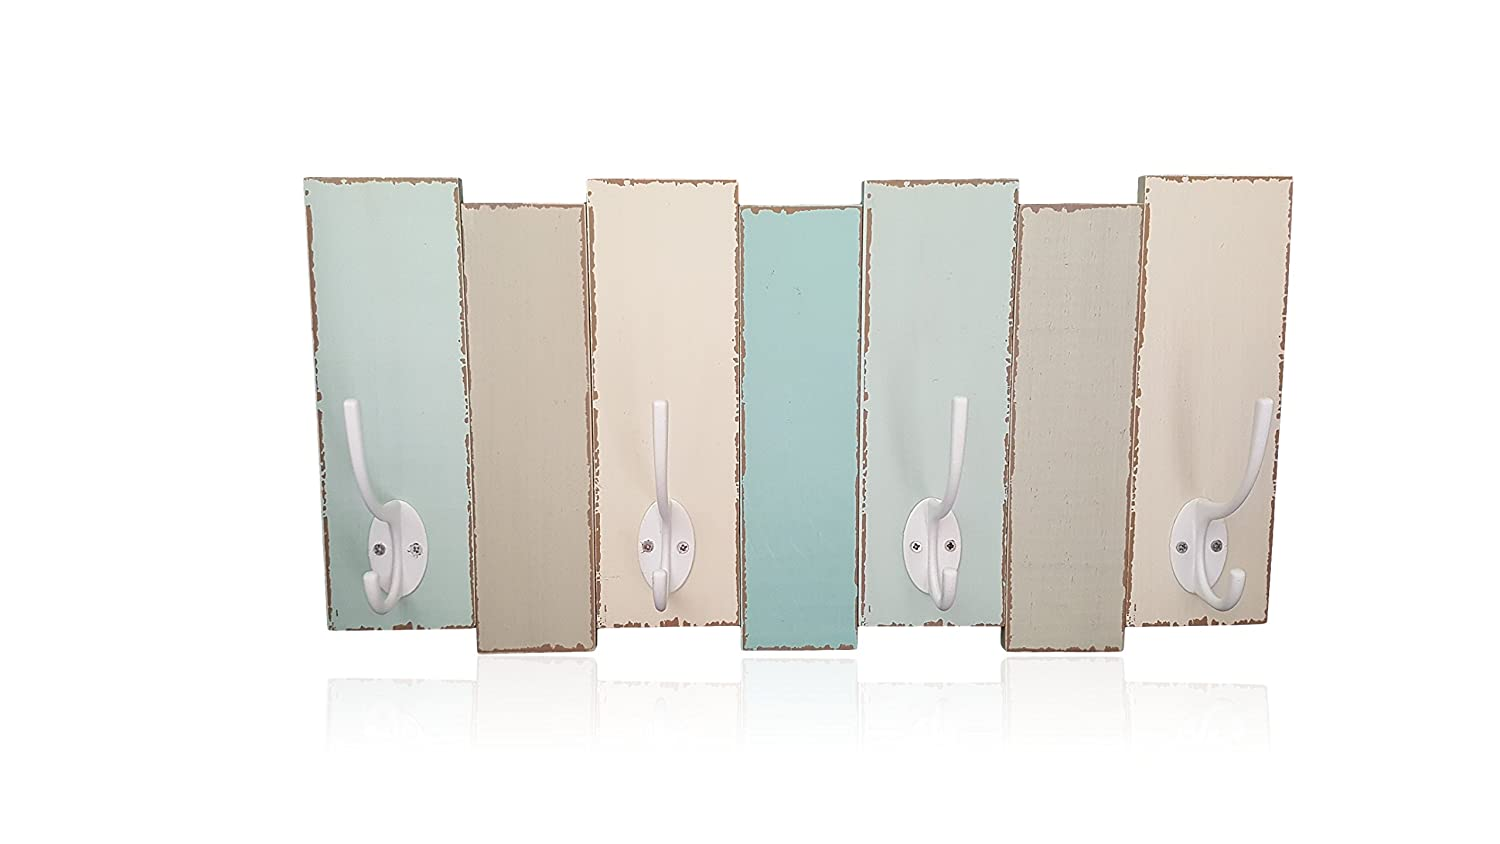 Coastal Wood Wall Coat Rack-4 Double Metal Hooks-Distressed Beach Decor Finish by Tumbler Home